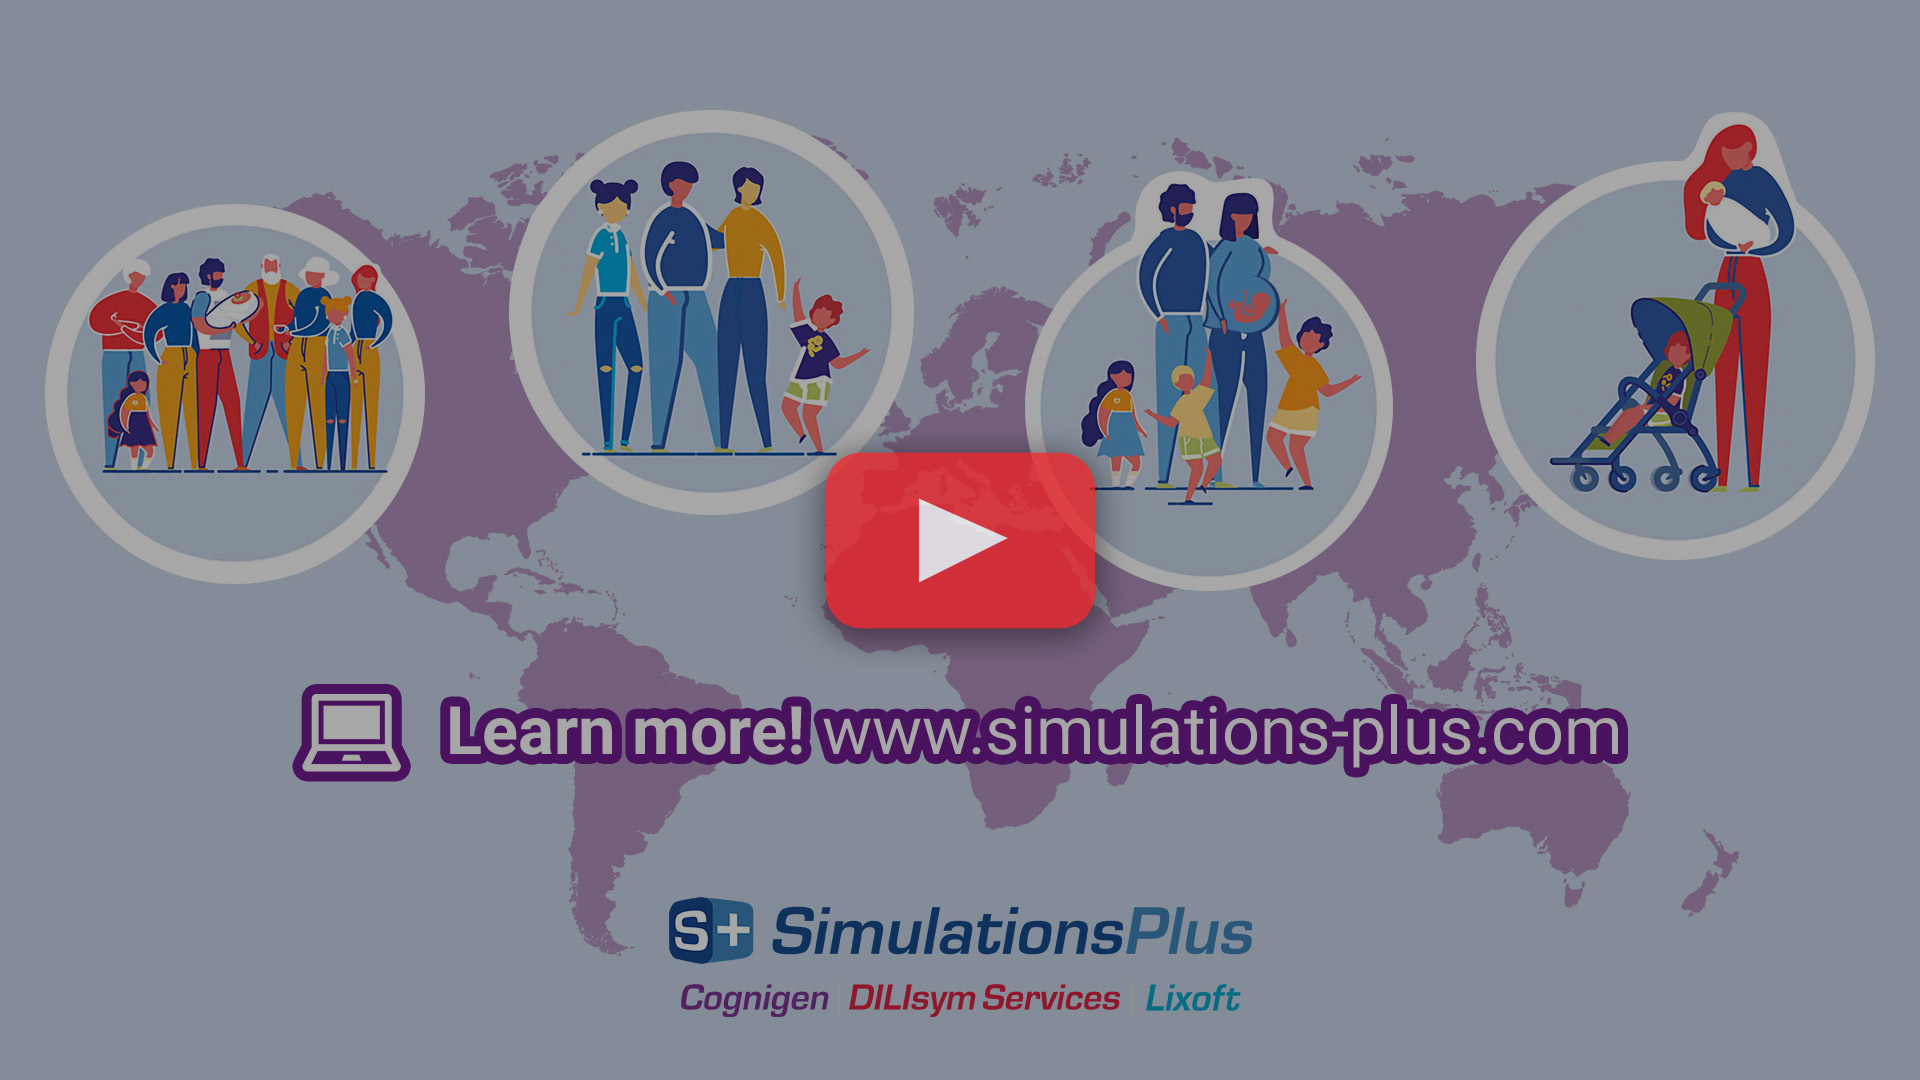 SLPhas been serving clients worldwide for 25 years!Aleading provider of modeling &simulation software and consulting services supporting drug discovery, development research, and regulatory submissions